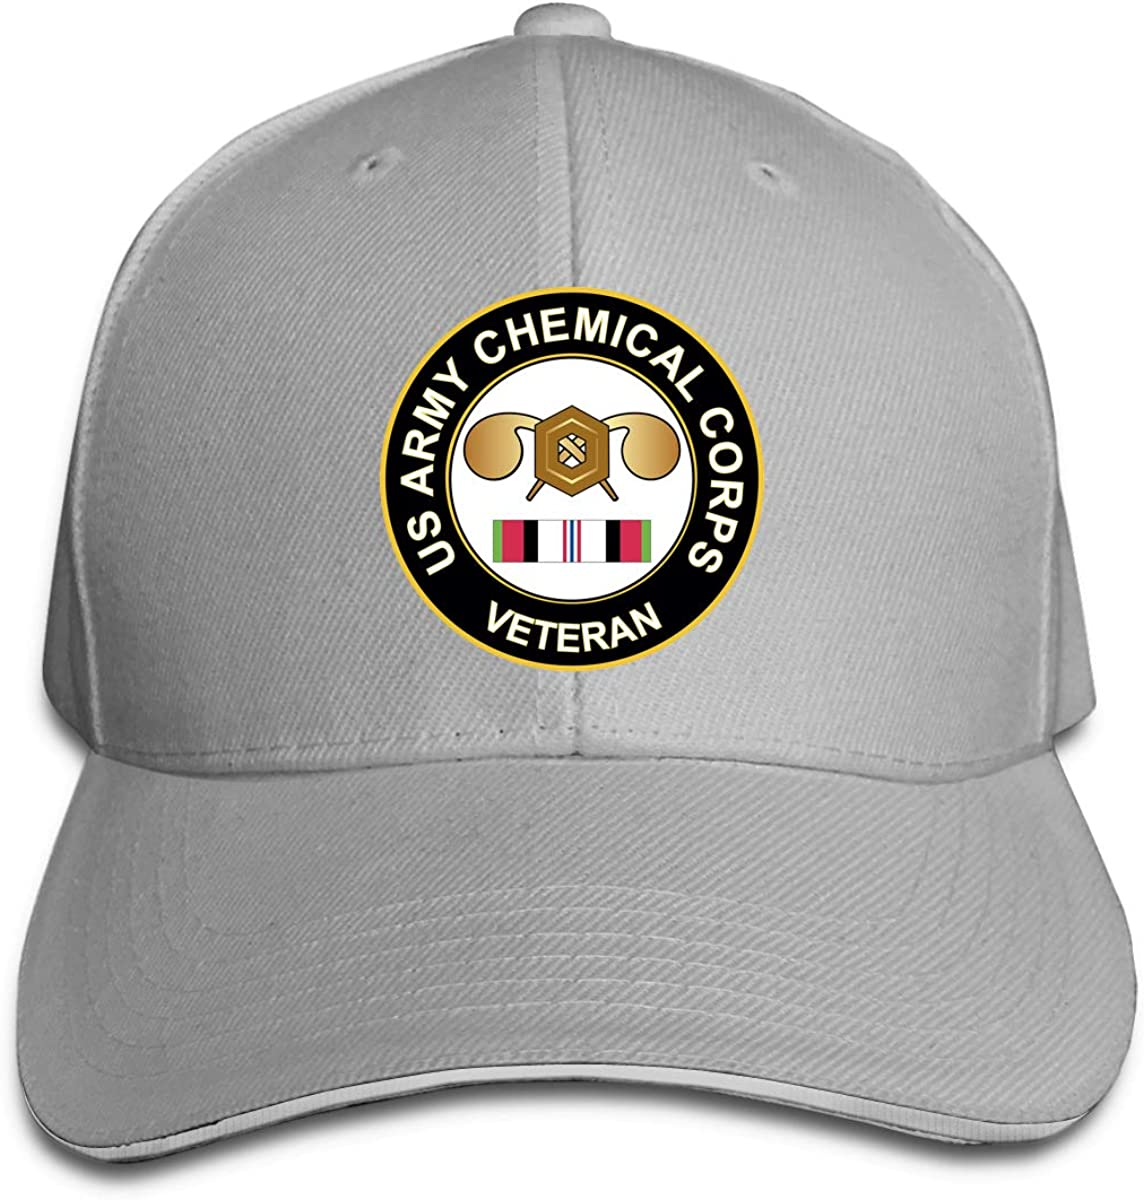 Army Chemical Corps Afghanistan Adjustable Sandwich Cap Baseball Cap Casquette Hat